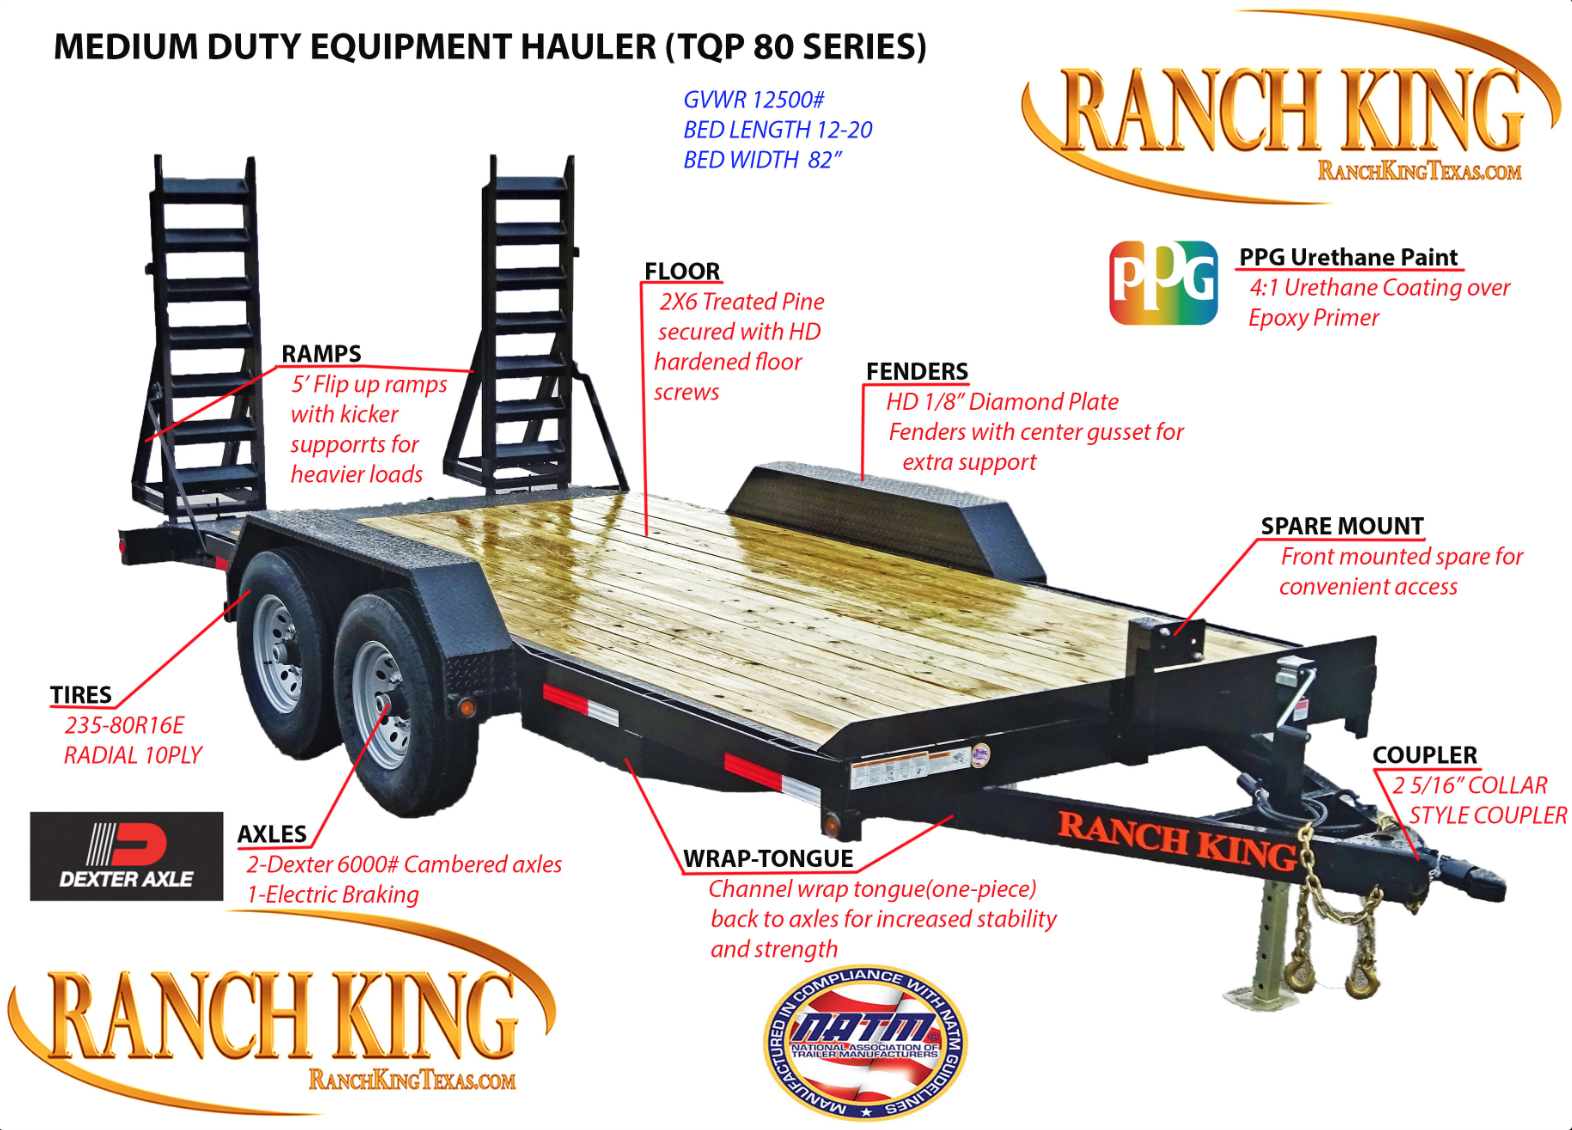 TQP80 Medium Duty Equipment Hauler